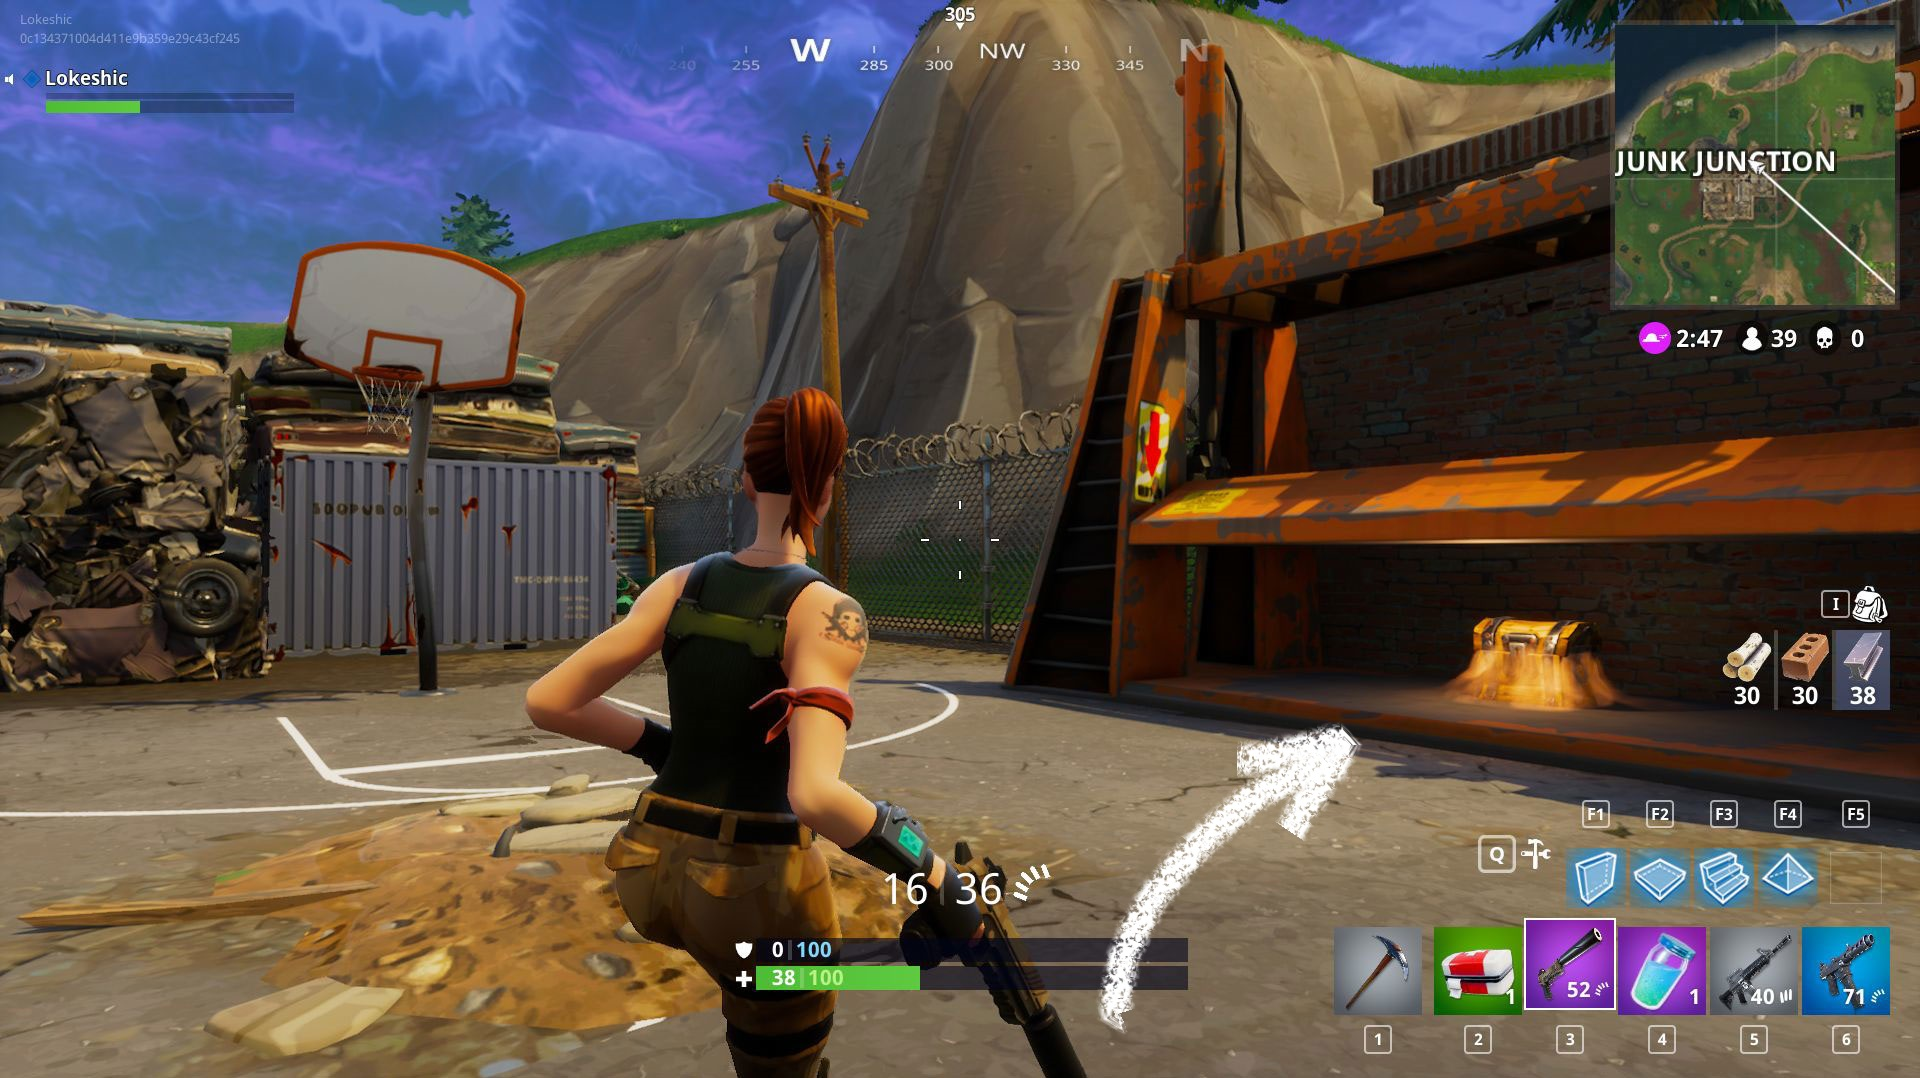 'Fortnite' Season 5, Week 5 Challenges Guide